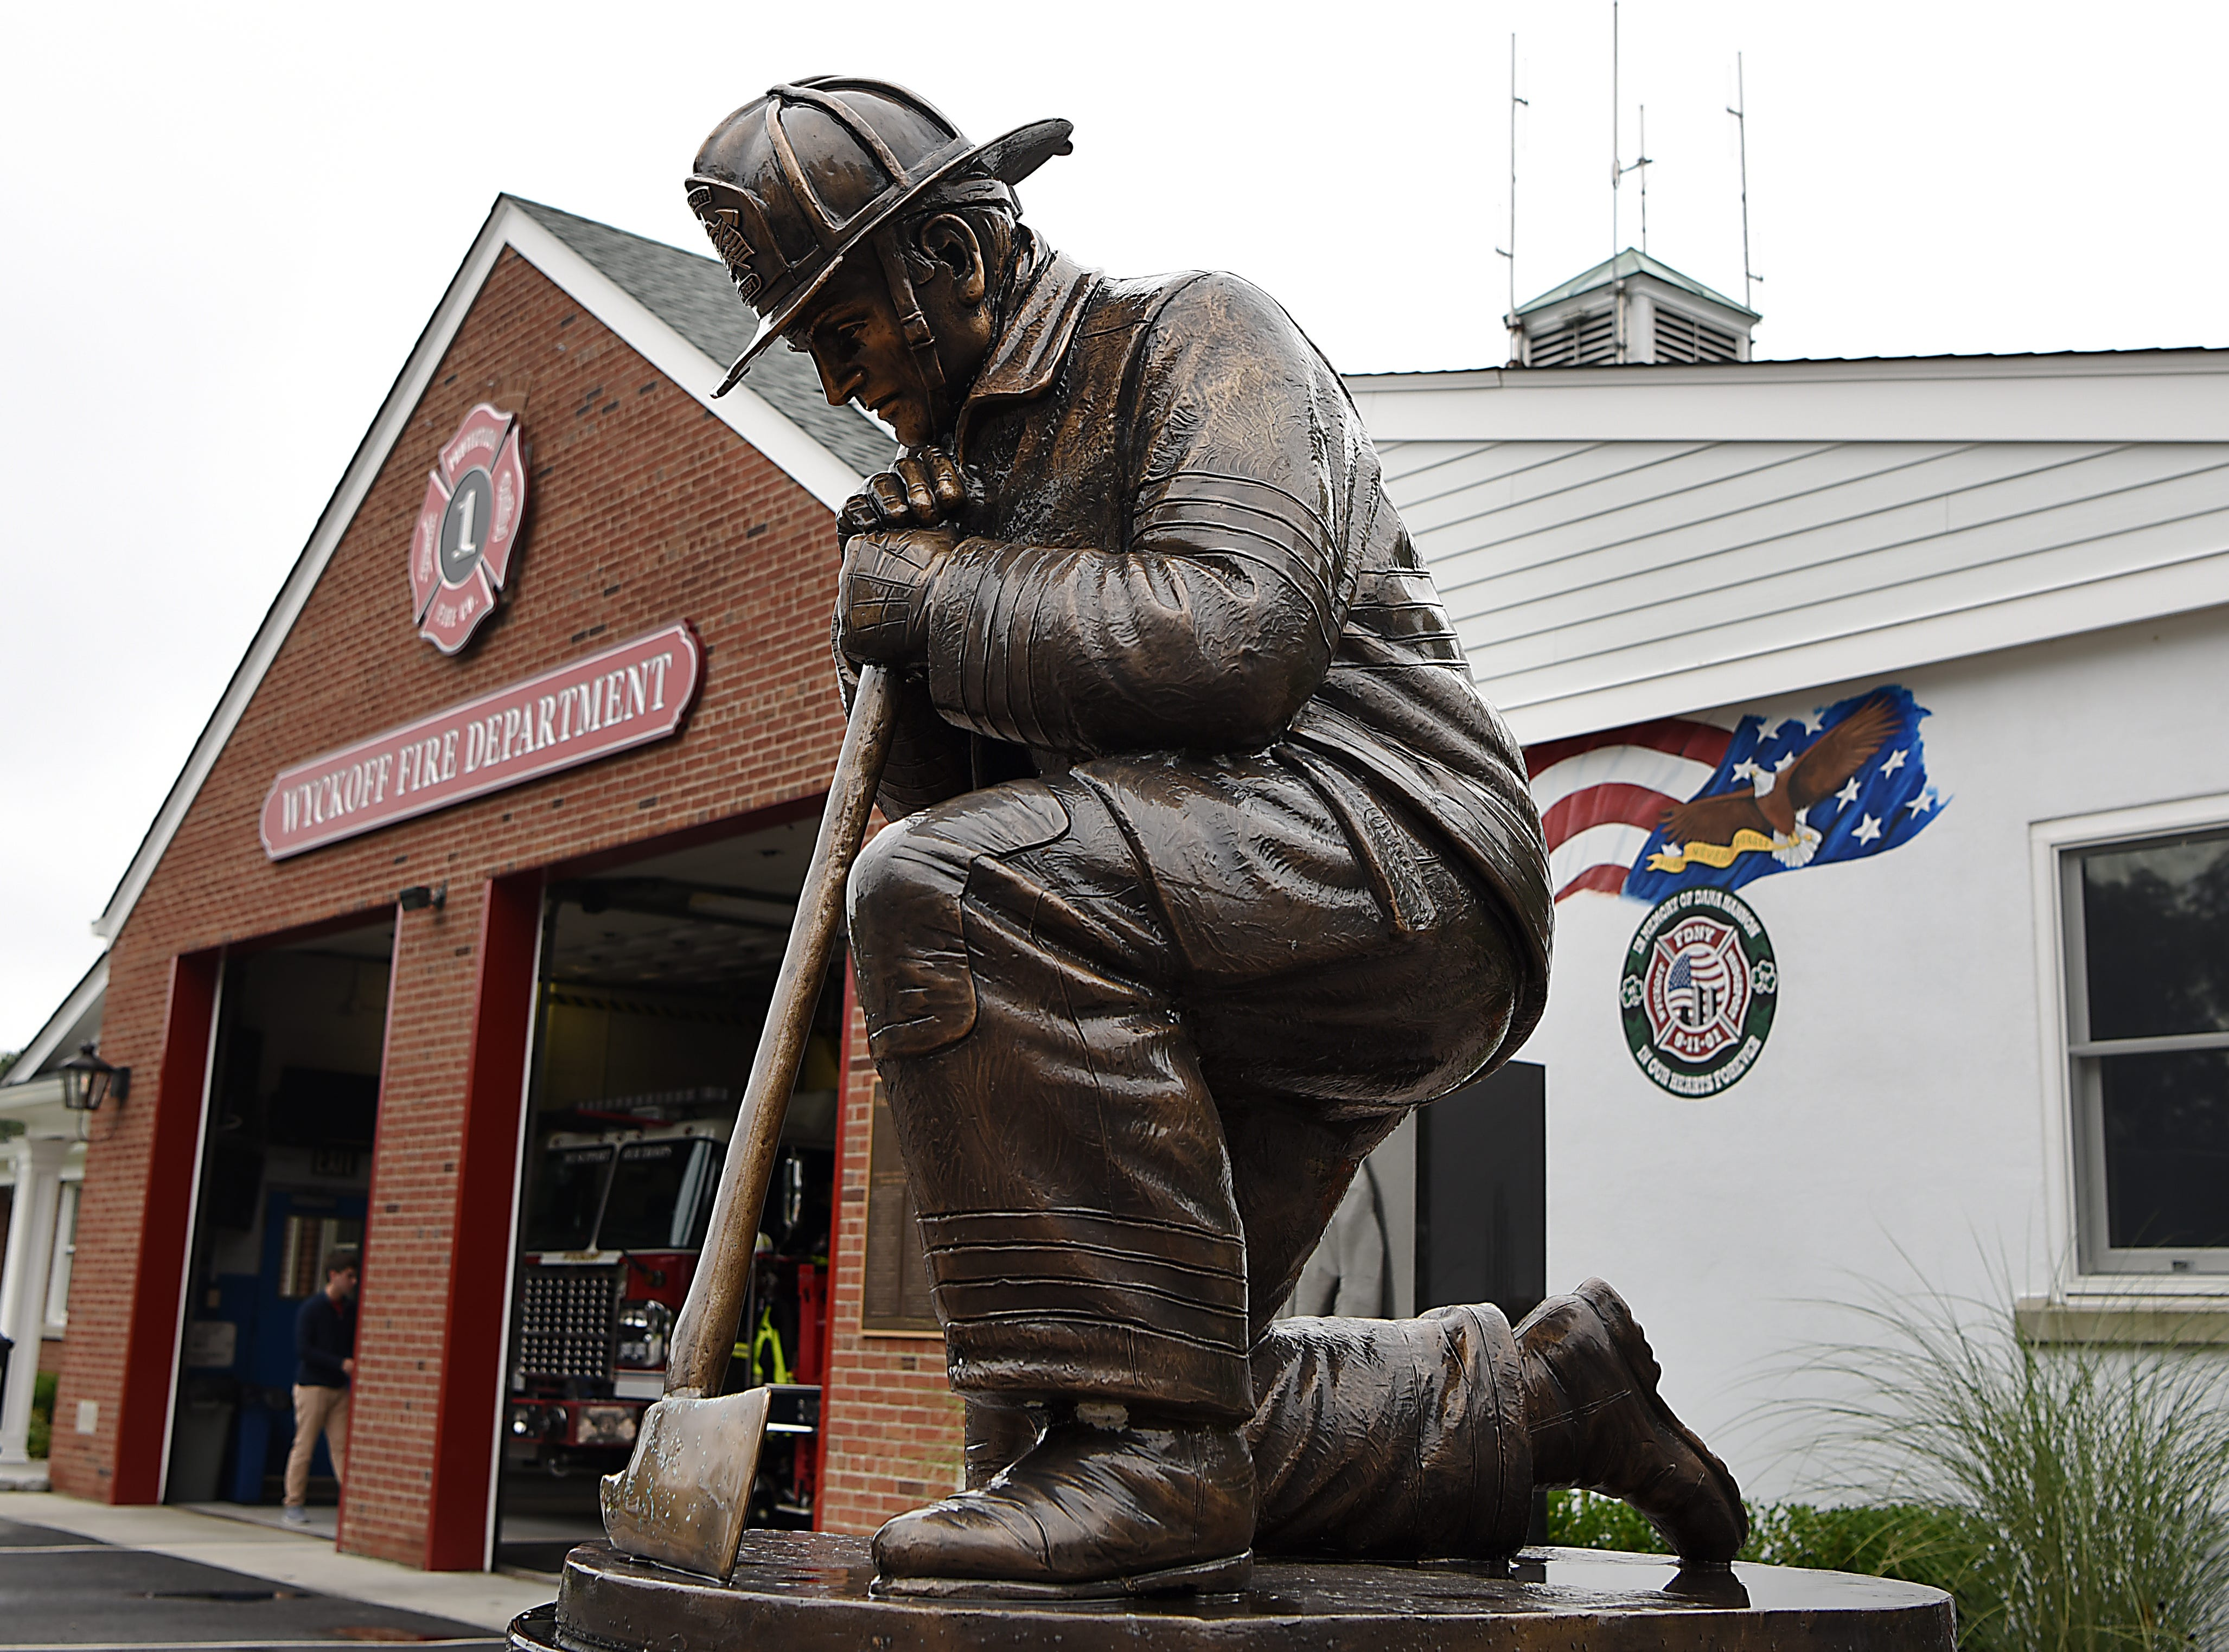 September 11th memorial at the Wyckoff Volunteer Fire Department Company No. 1 in Wyckoff on Tuesday September 11, 2018. The memorial is dedicated to firefighter Dana Rey Hannon.